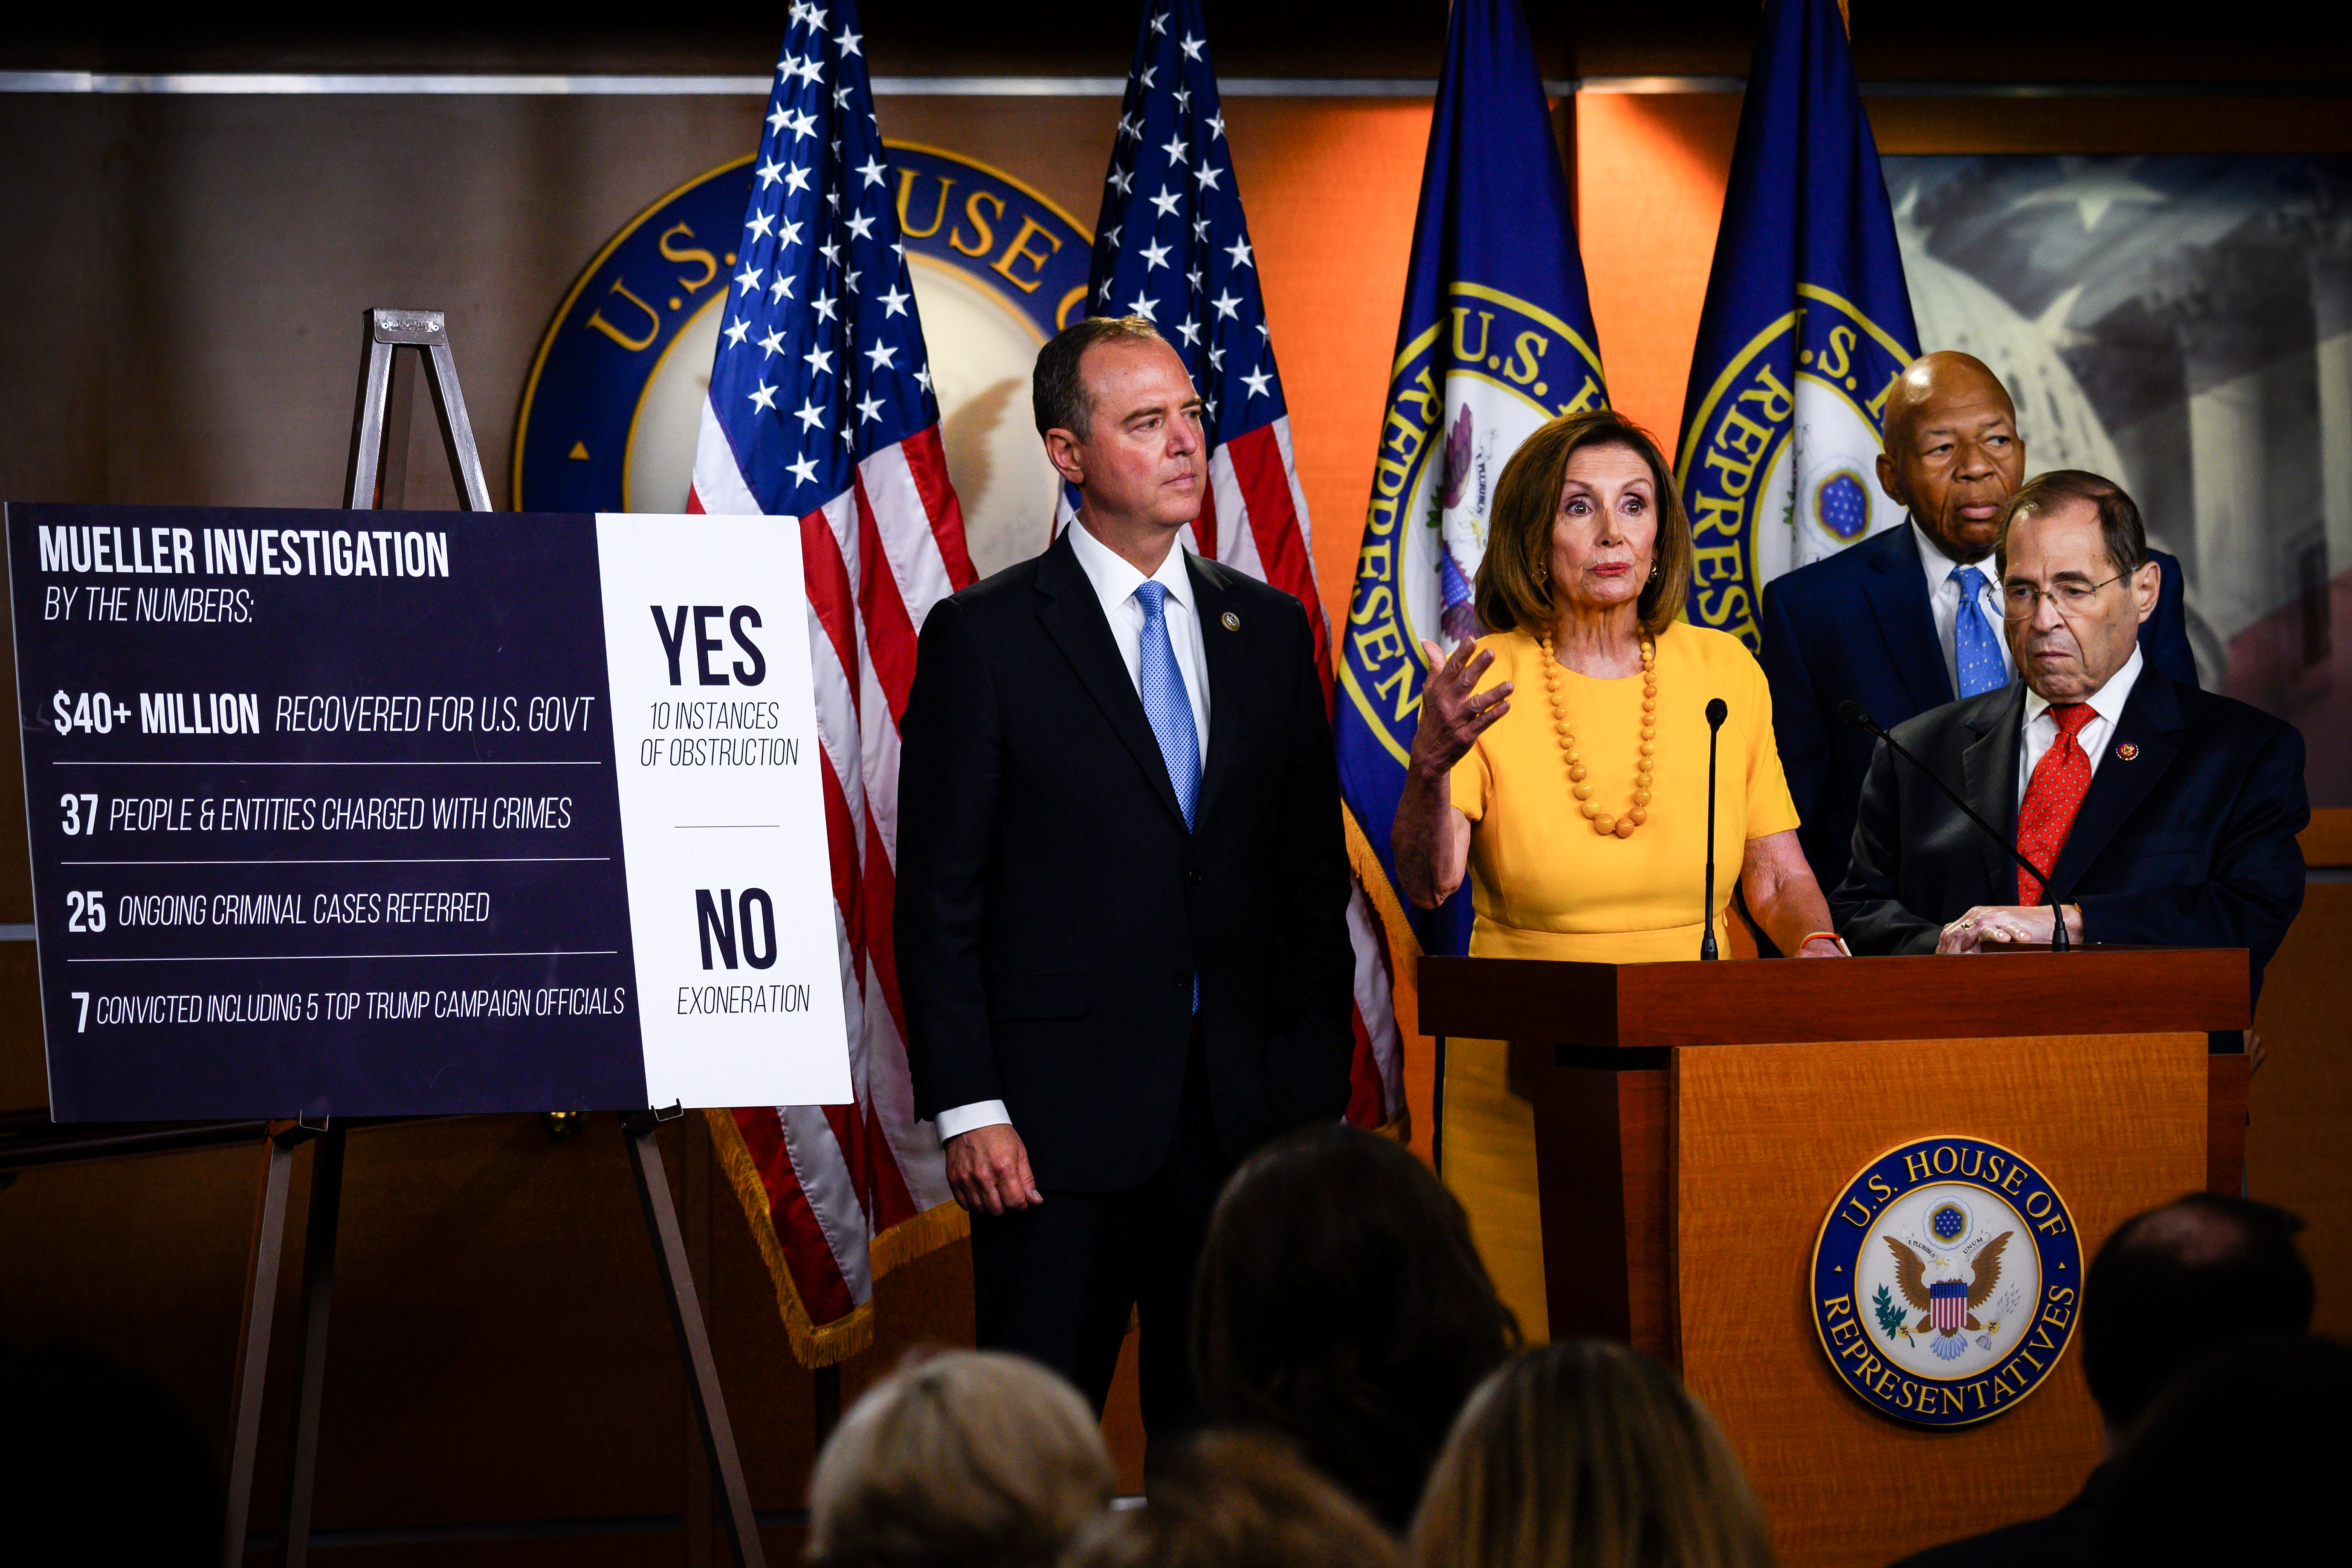 Behind closed doors, Democrats are no closer to impeachment post-Mueller